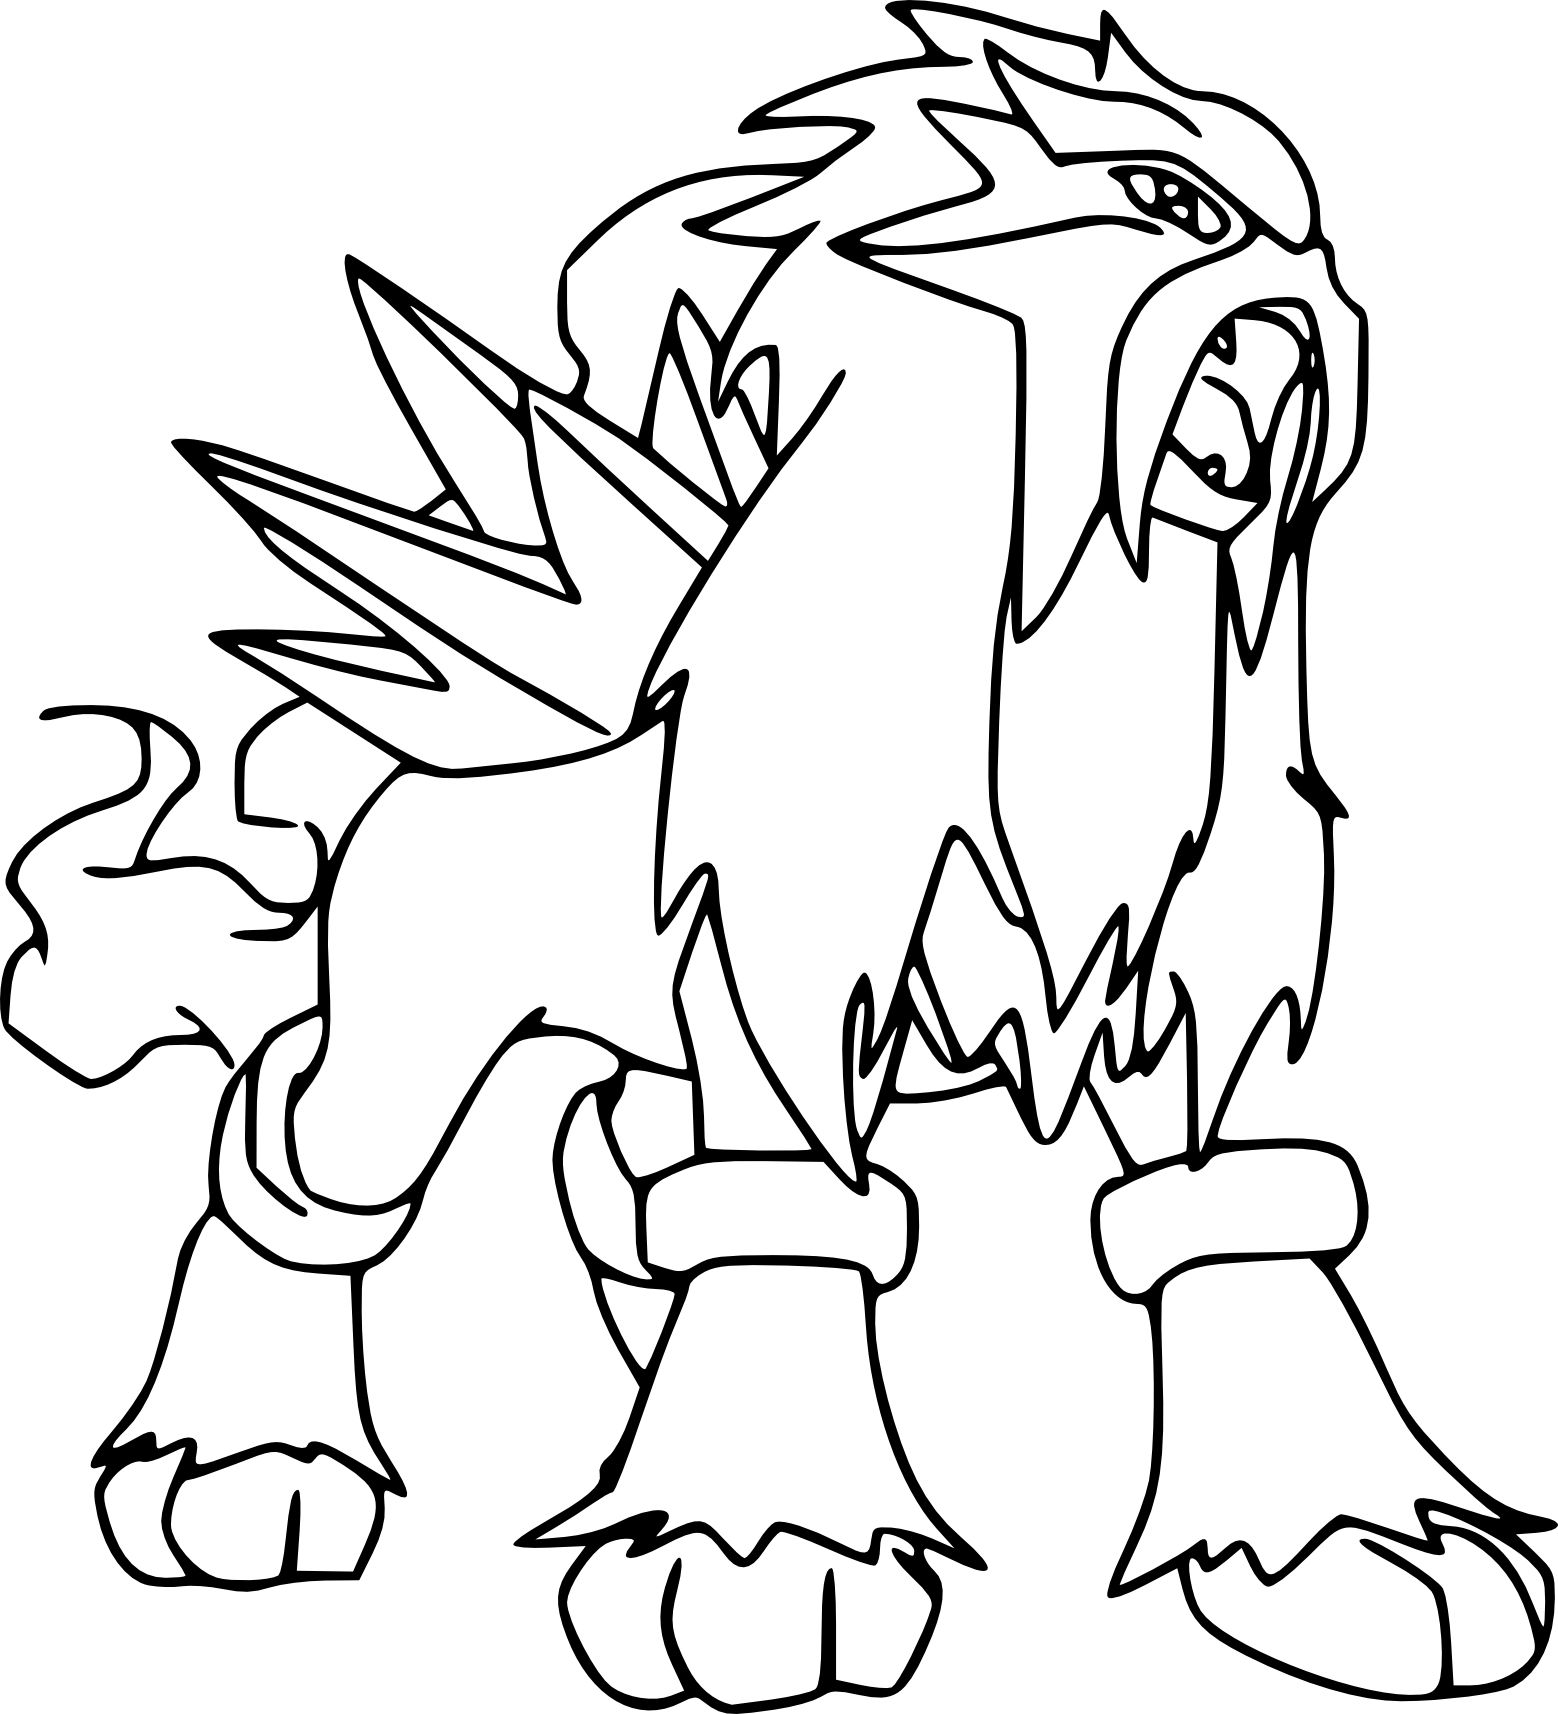 Coloriage Pokemon Ultra Lune